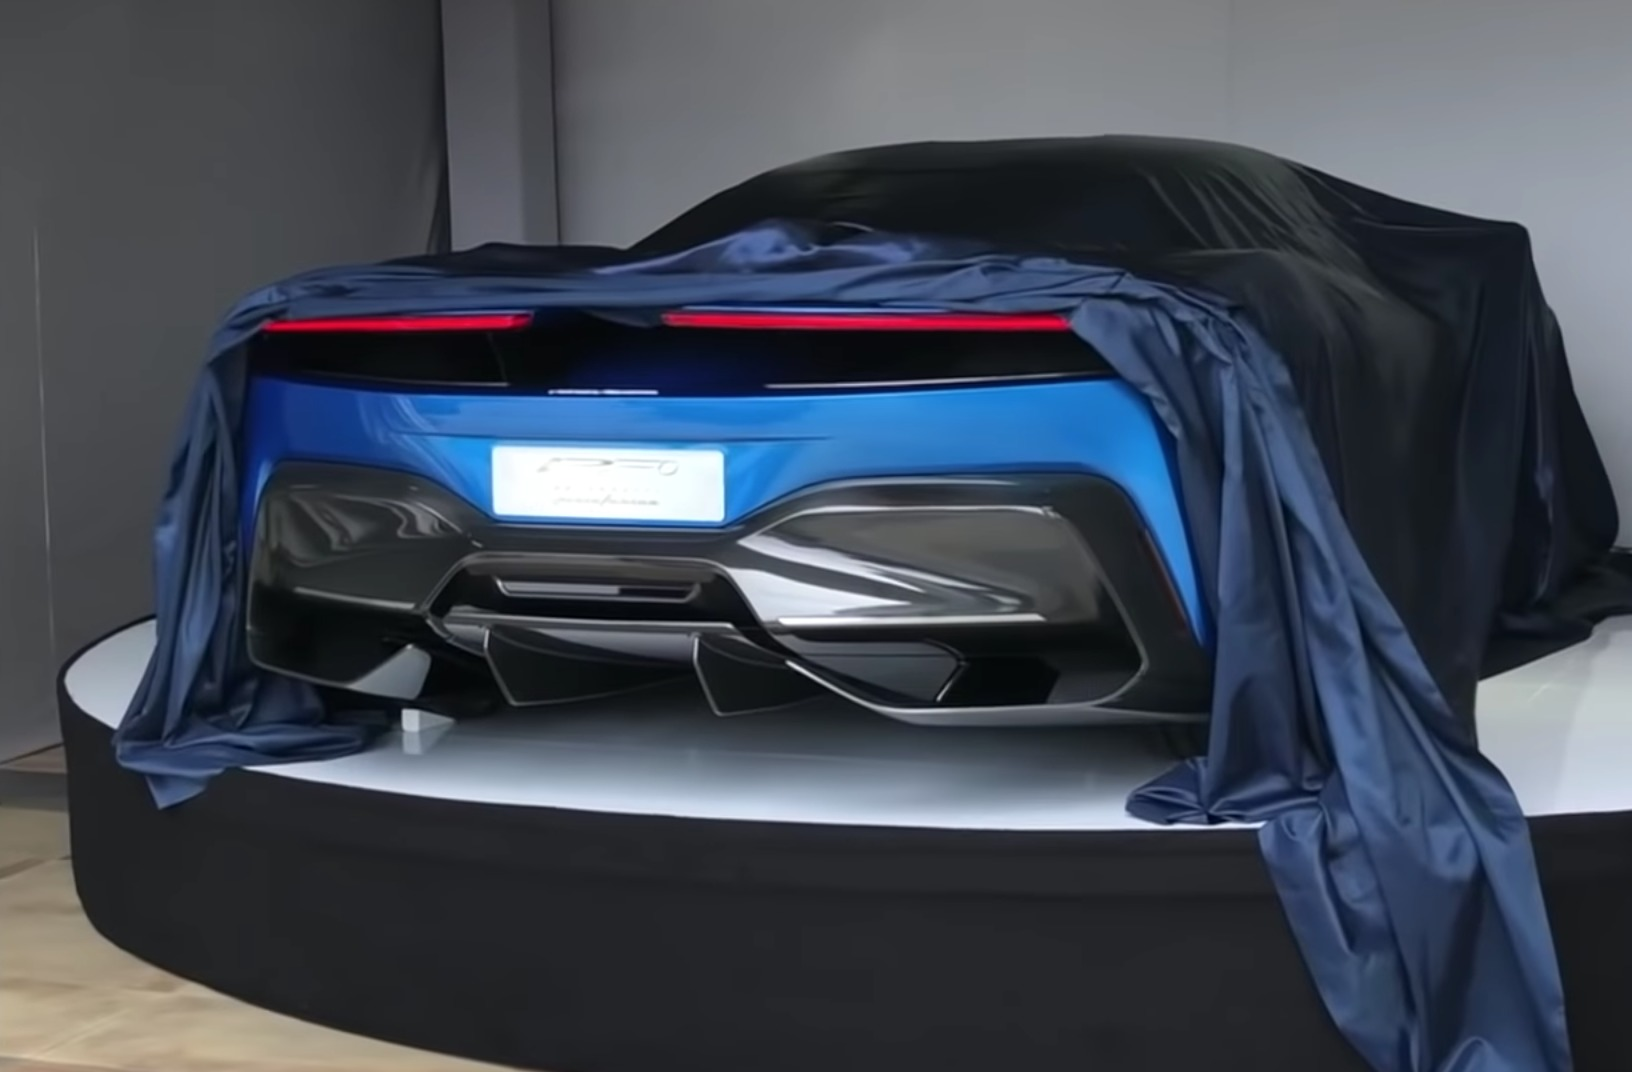 salon de gen ve 2019 pininfarina d voile une partie de sa supercar lectrique. Black Bedroom Furniture Sets. Home Design Ideas